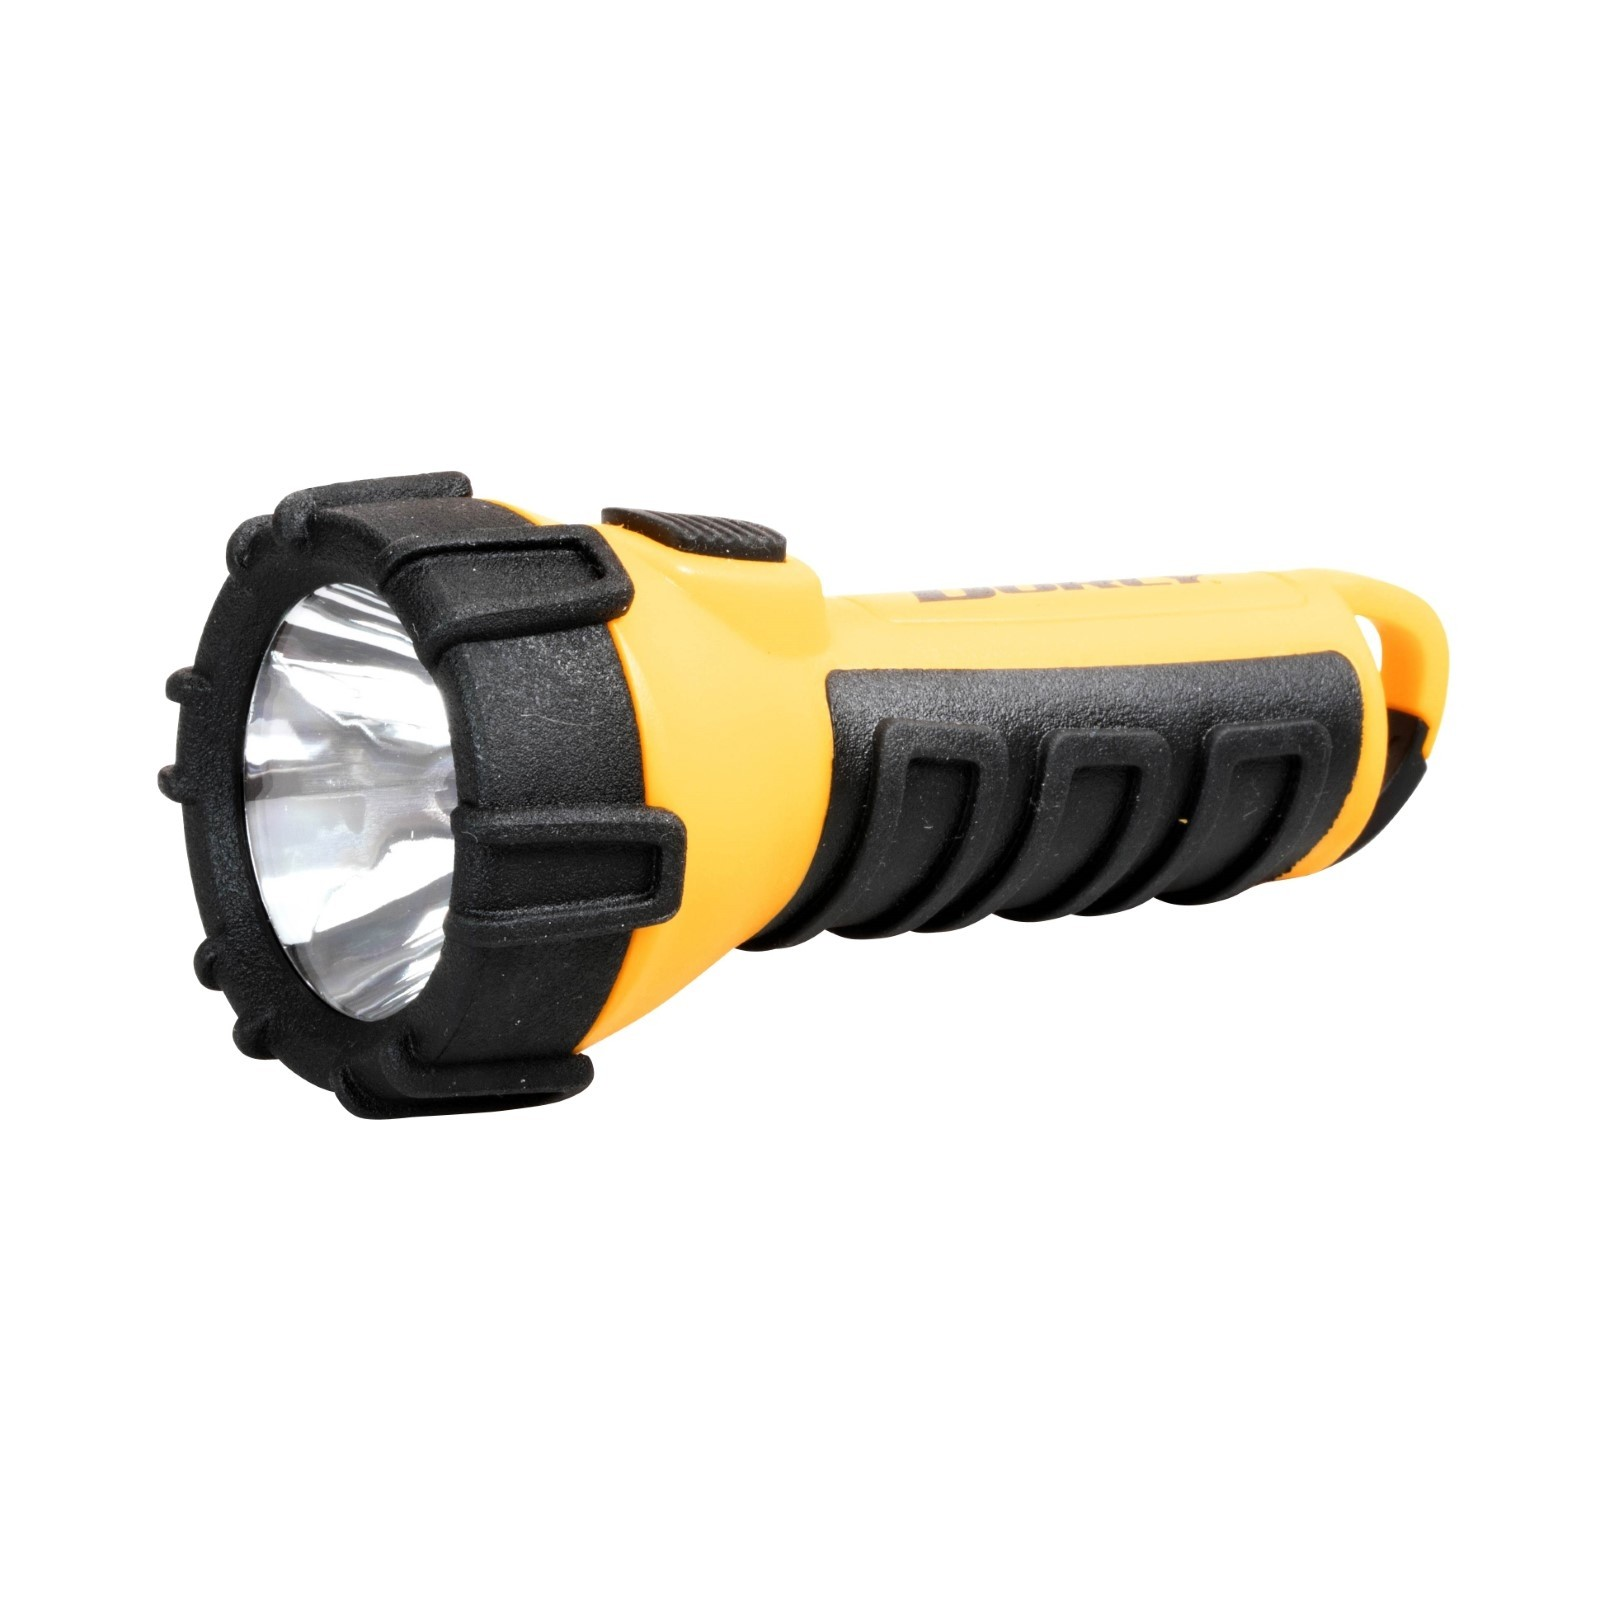 Flash Light Dorcy 41 2522 Compact Floating Flashlight Dorcy